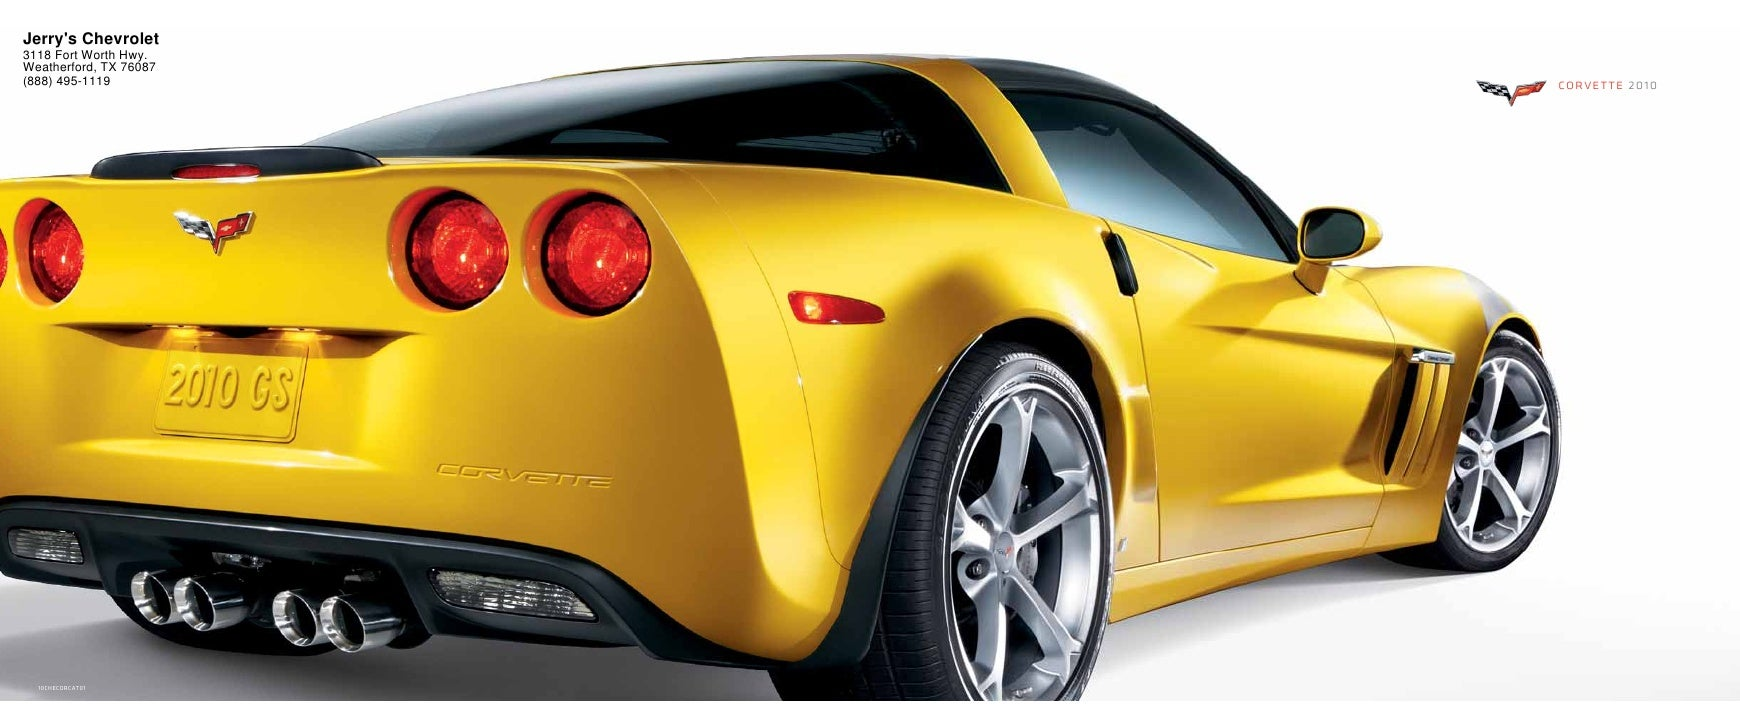 Jerry's Chevrolet 3118 Fort Worth Hwy. Weatherford, TX 76087 (888) 495-1119          corvette 2010       10CHECORCAT01